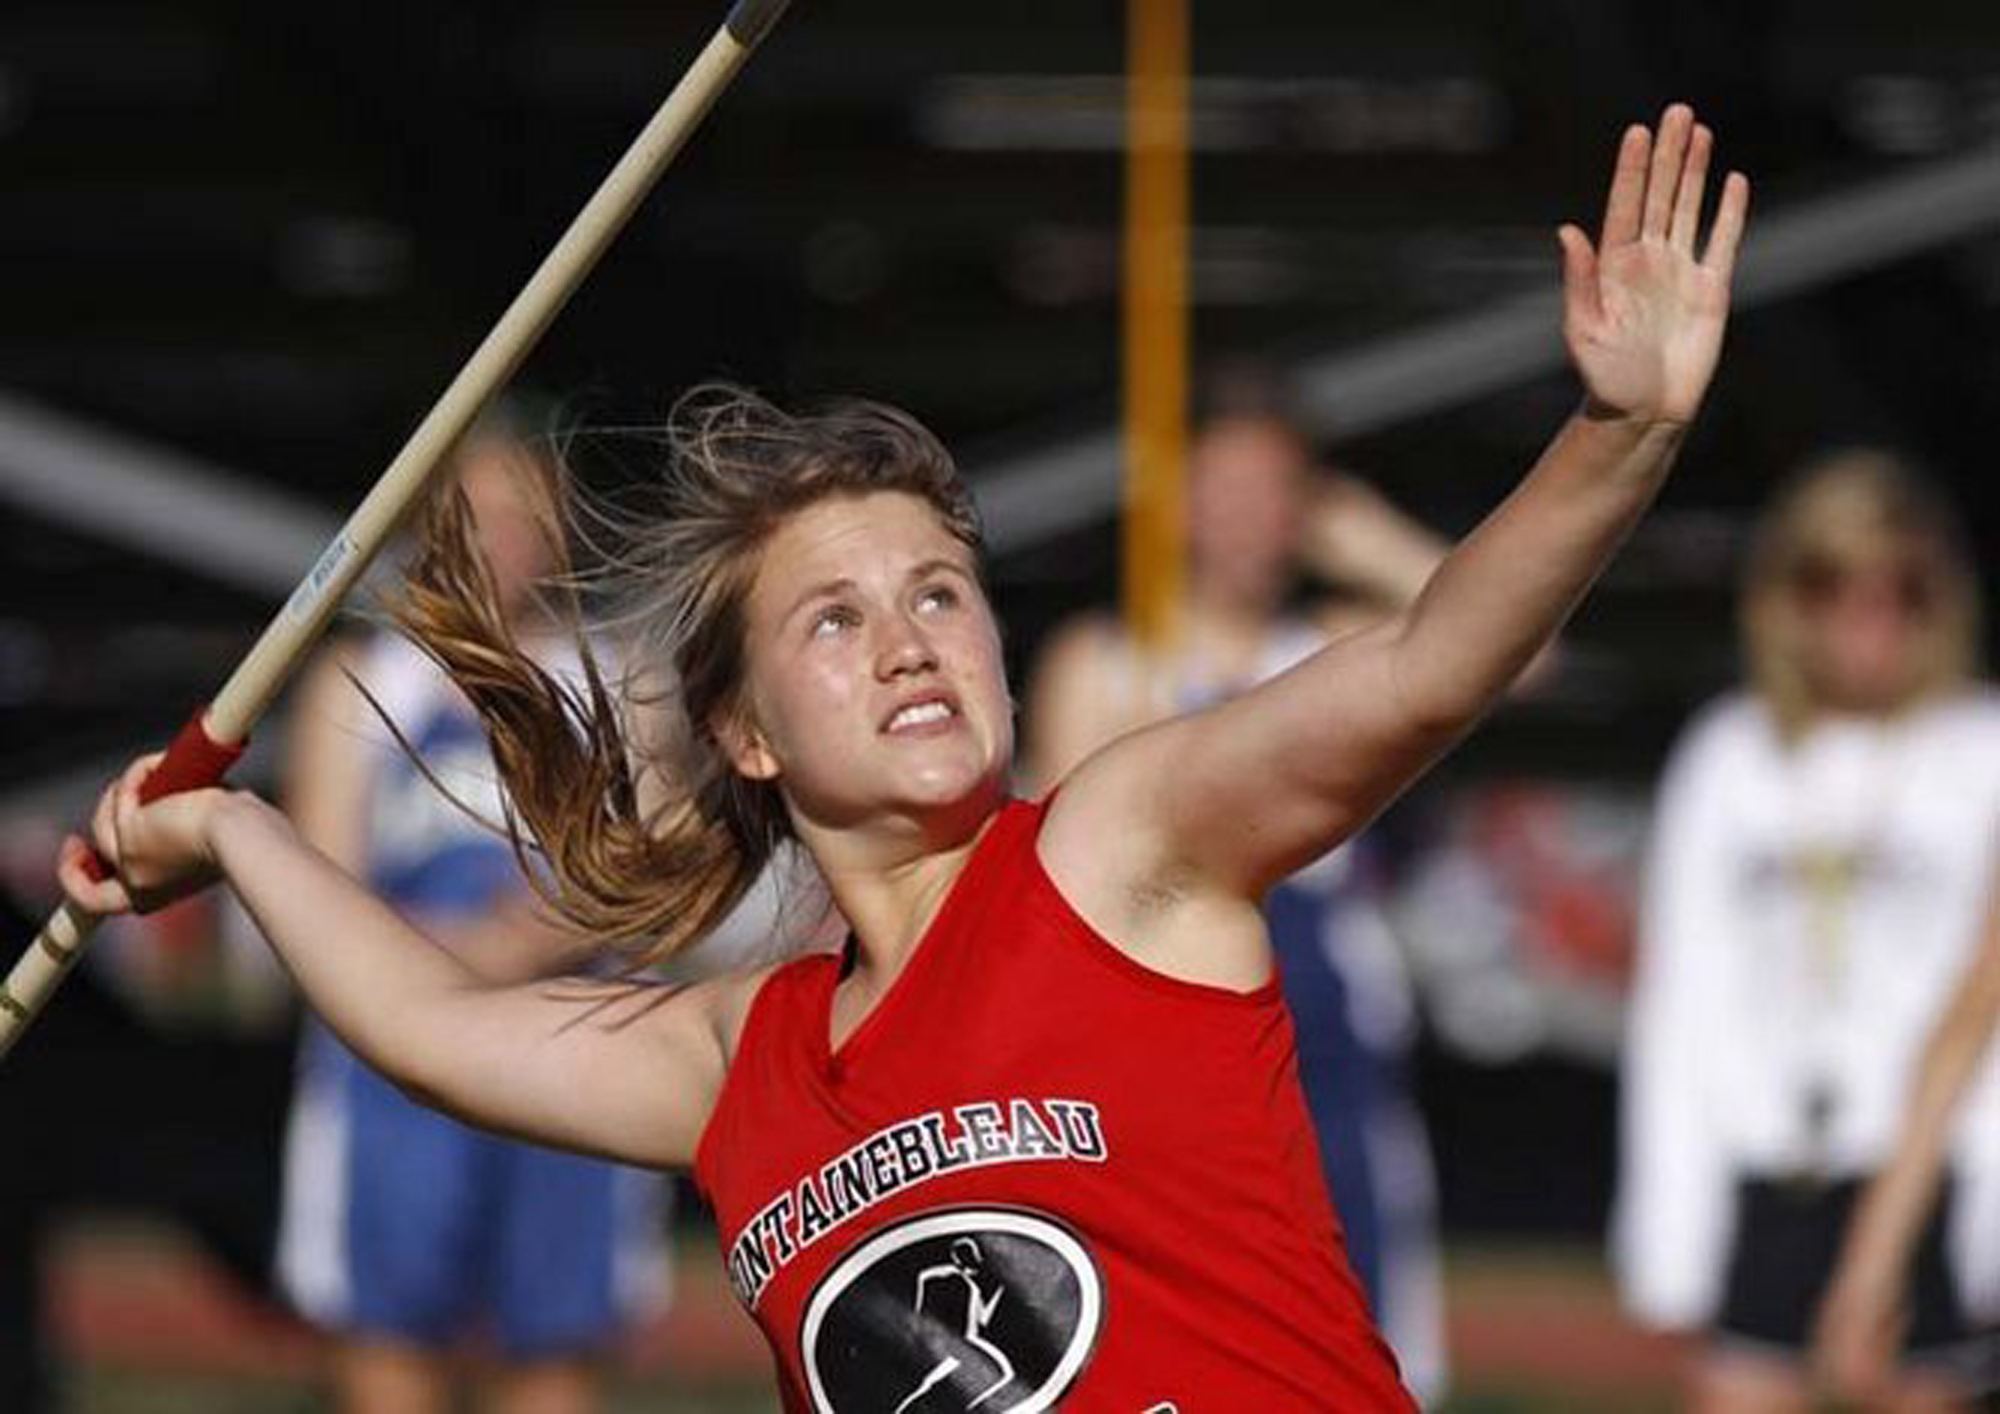 Fontainebleau H.S. javelin competition